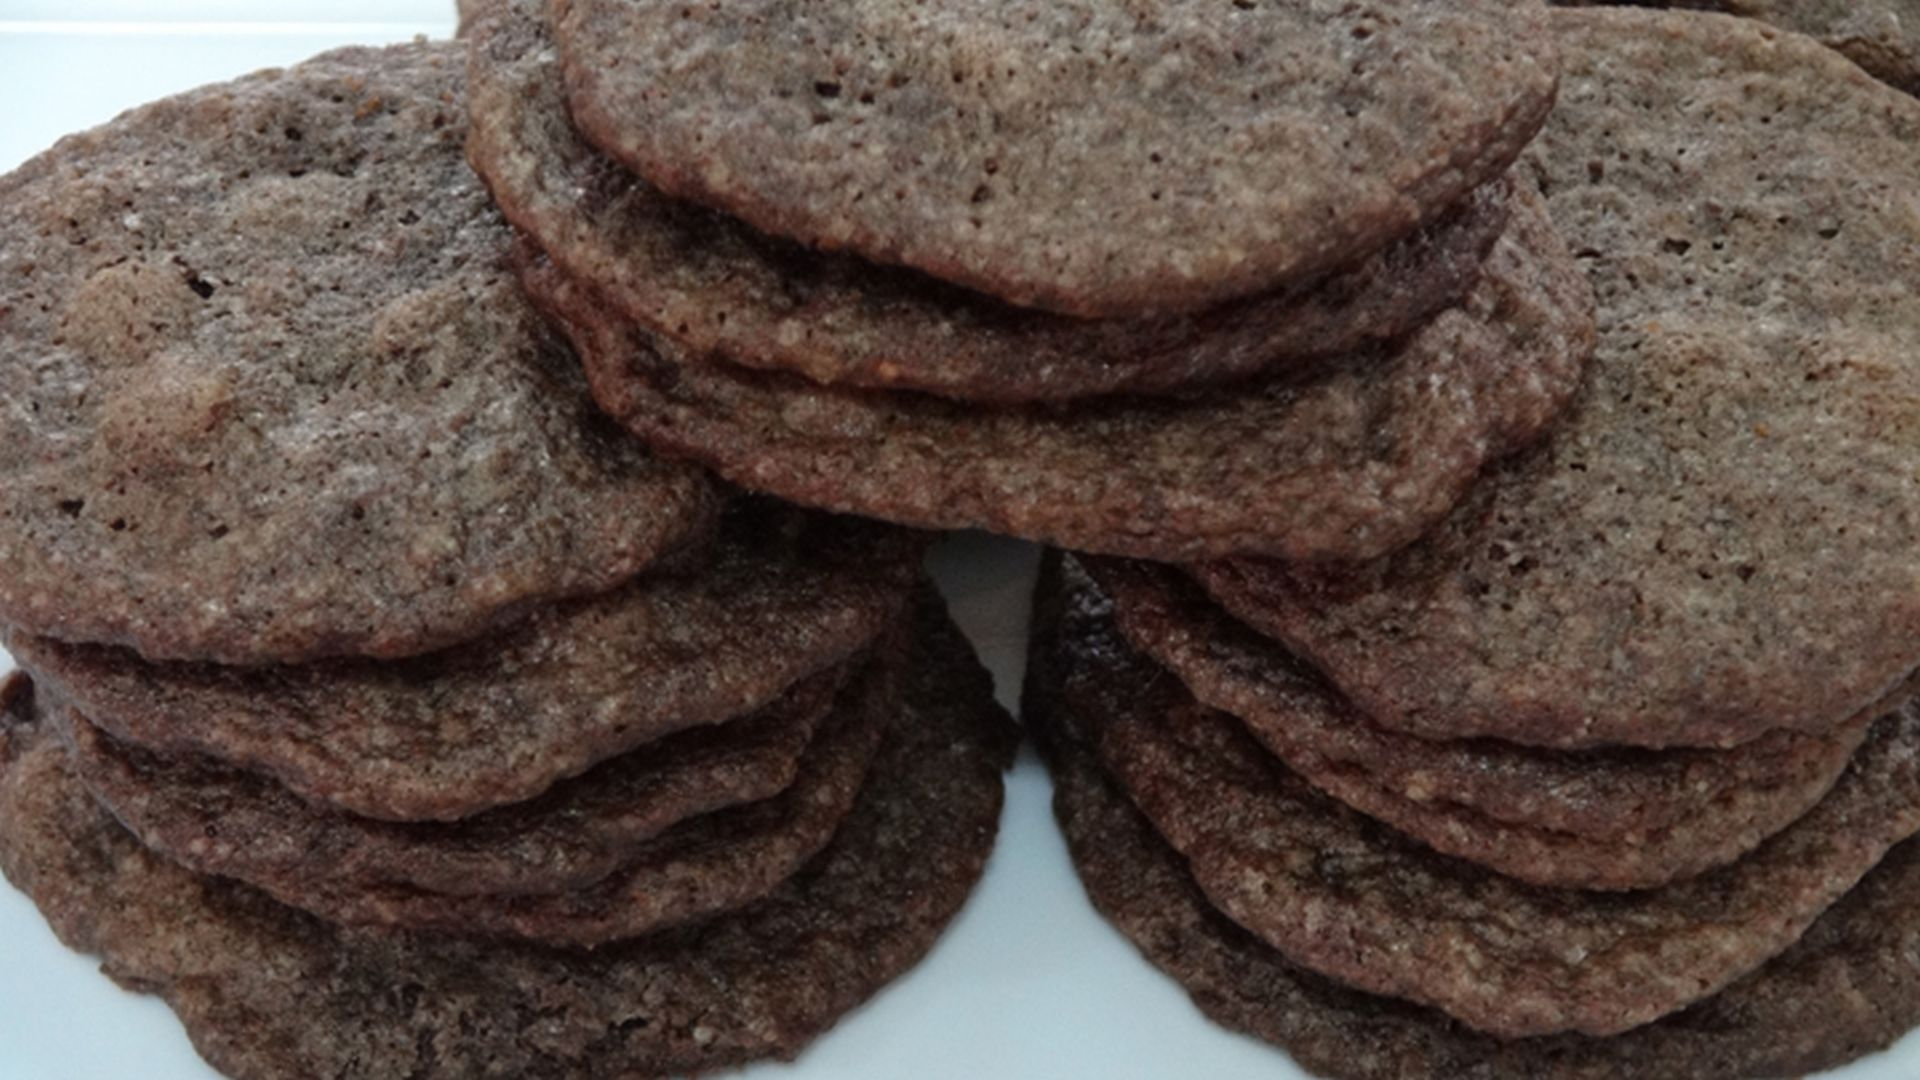 Chocolate Chocolate Chip Cookies - The Frugal Chef